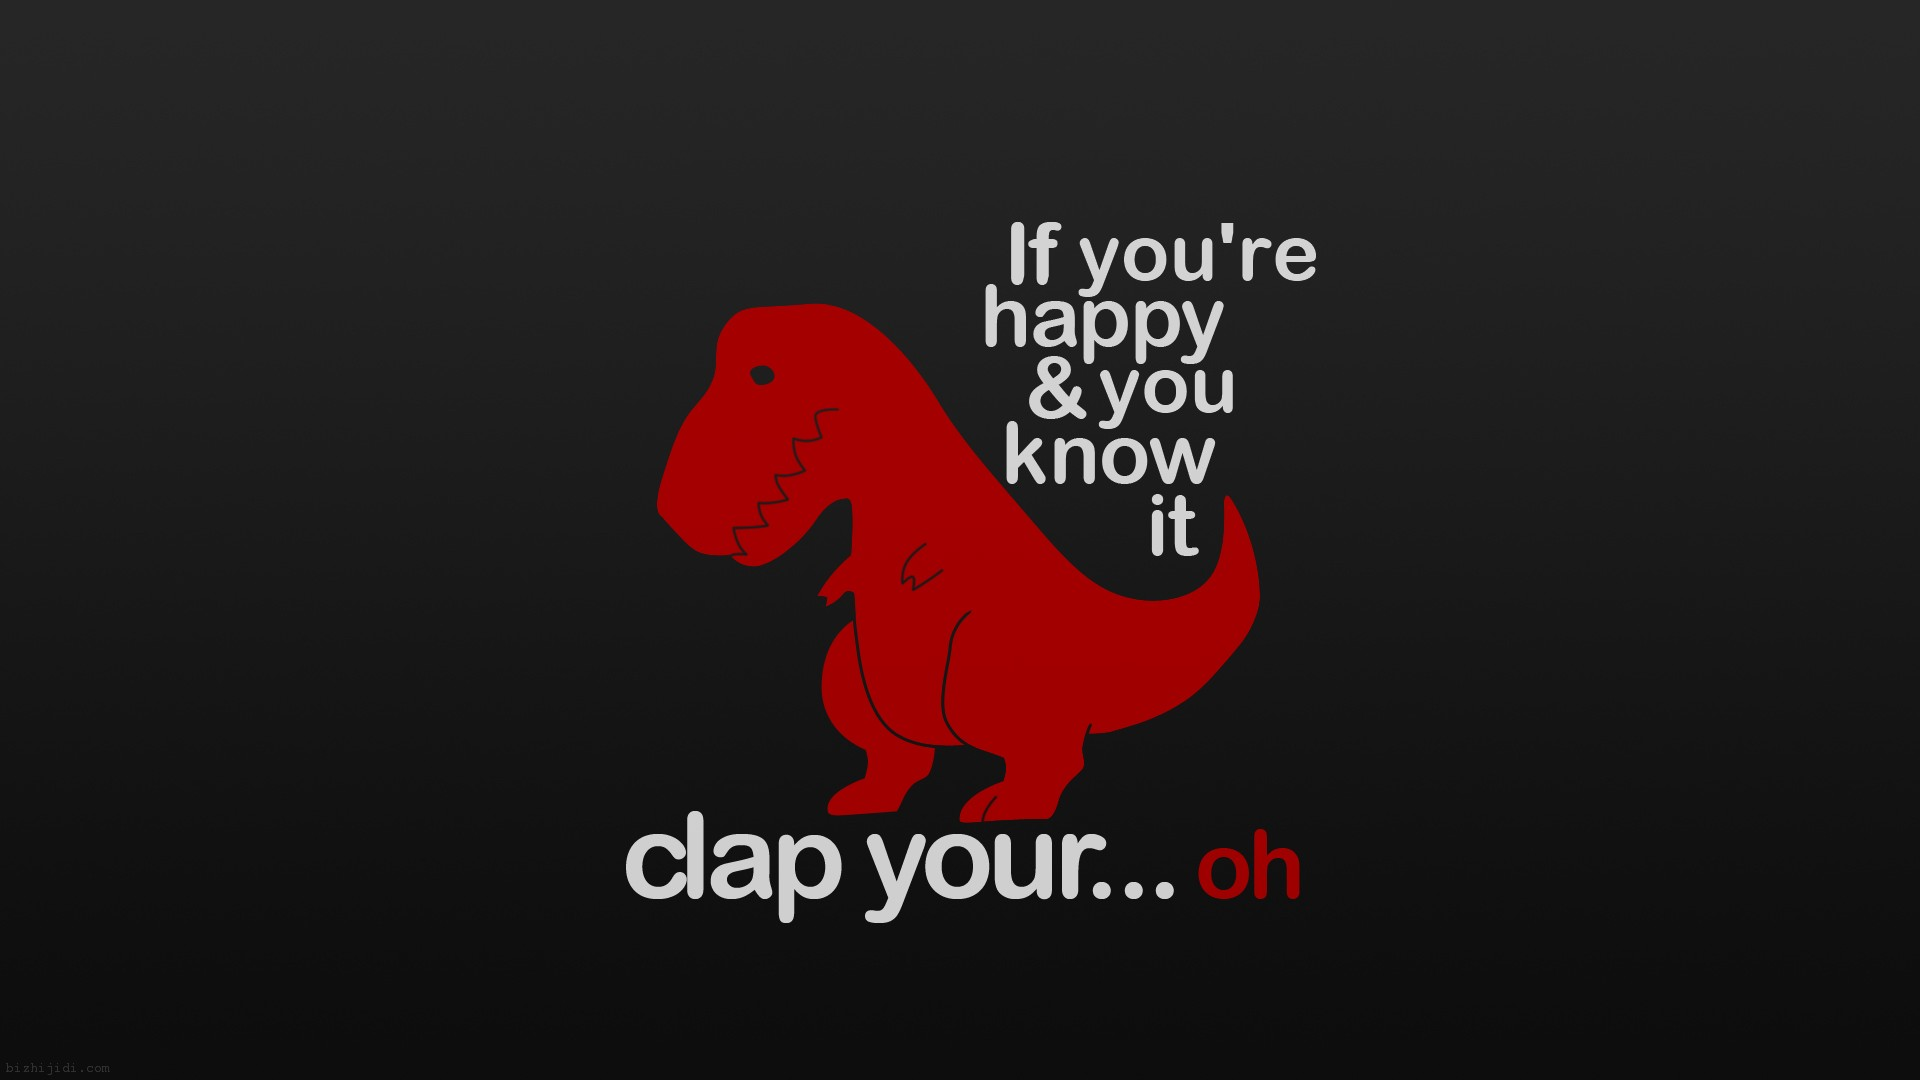 Funny wallpapers 1080p   Album on Imgur 1920x1080